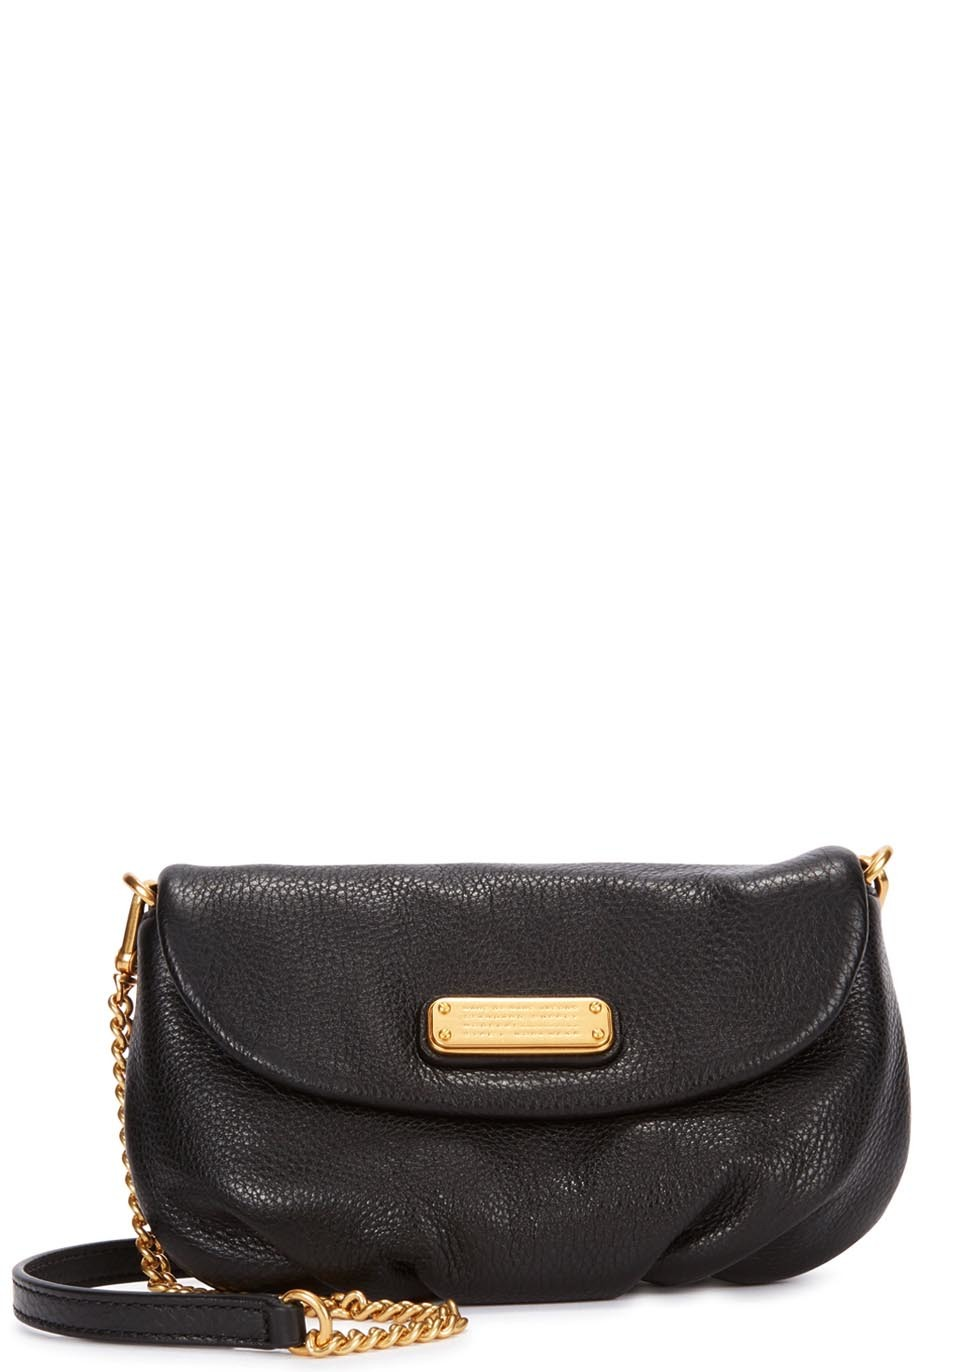 New Q Karlie Black Leather Shoulder Bag - predominant colour: black; occasions: casual, evening, creative work; type of pattern: standard; style: shoulder; length: shoulder (tucks under arm); size: small; material: leather; pattern: plain; finish: plain; embellishment: chain/metal; season: s/s 2015; wardrobe: investment